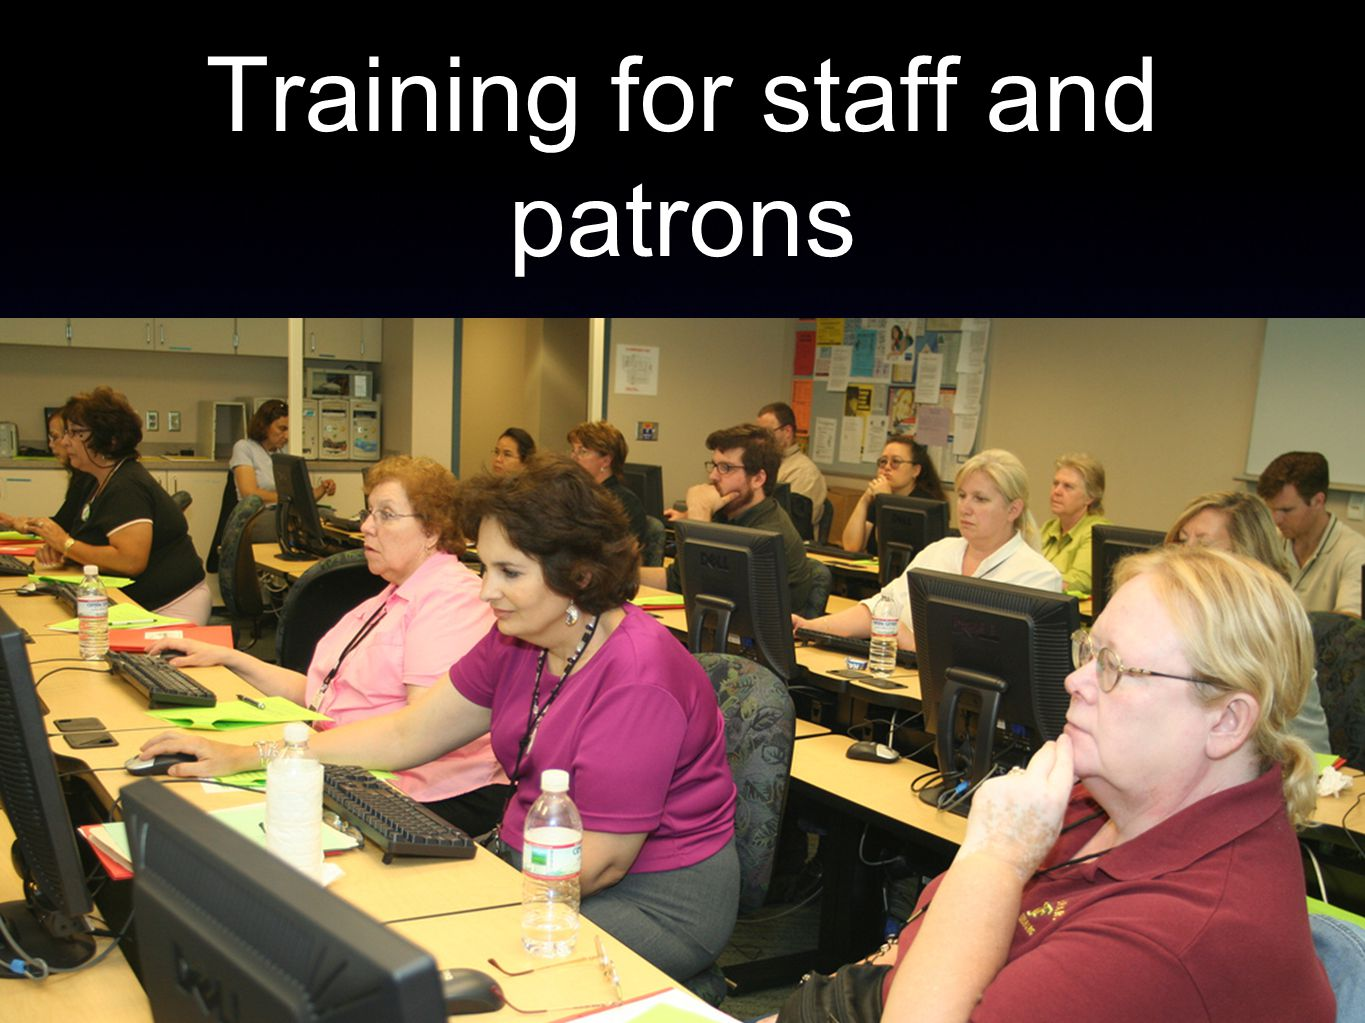 Training for staff and patrons